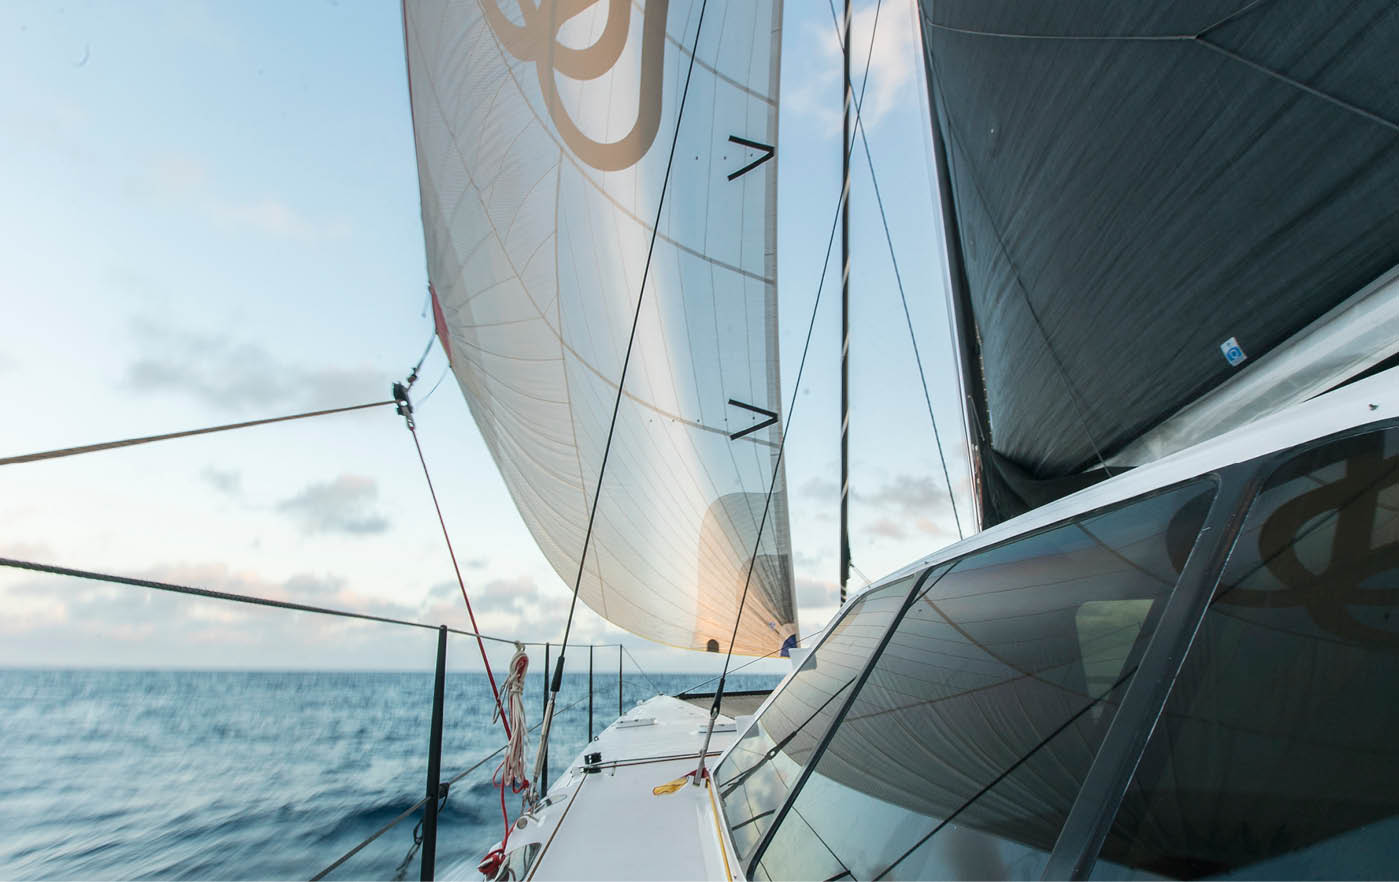 cruising-spinnaker-downwind-sail